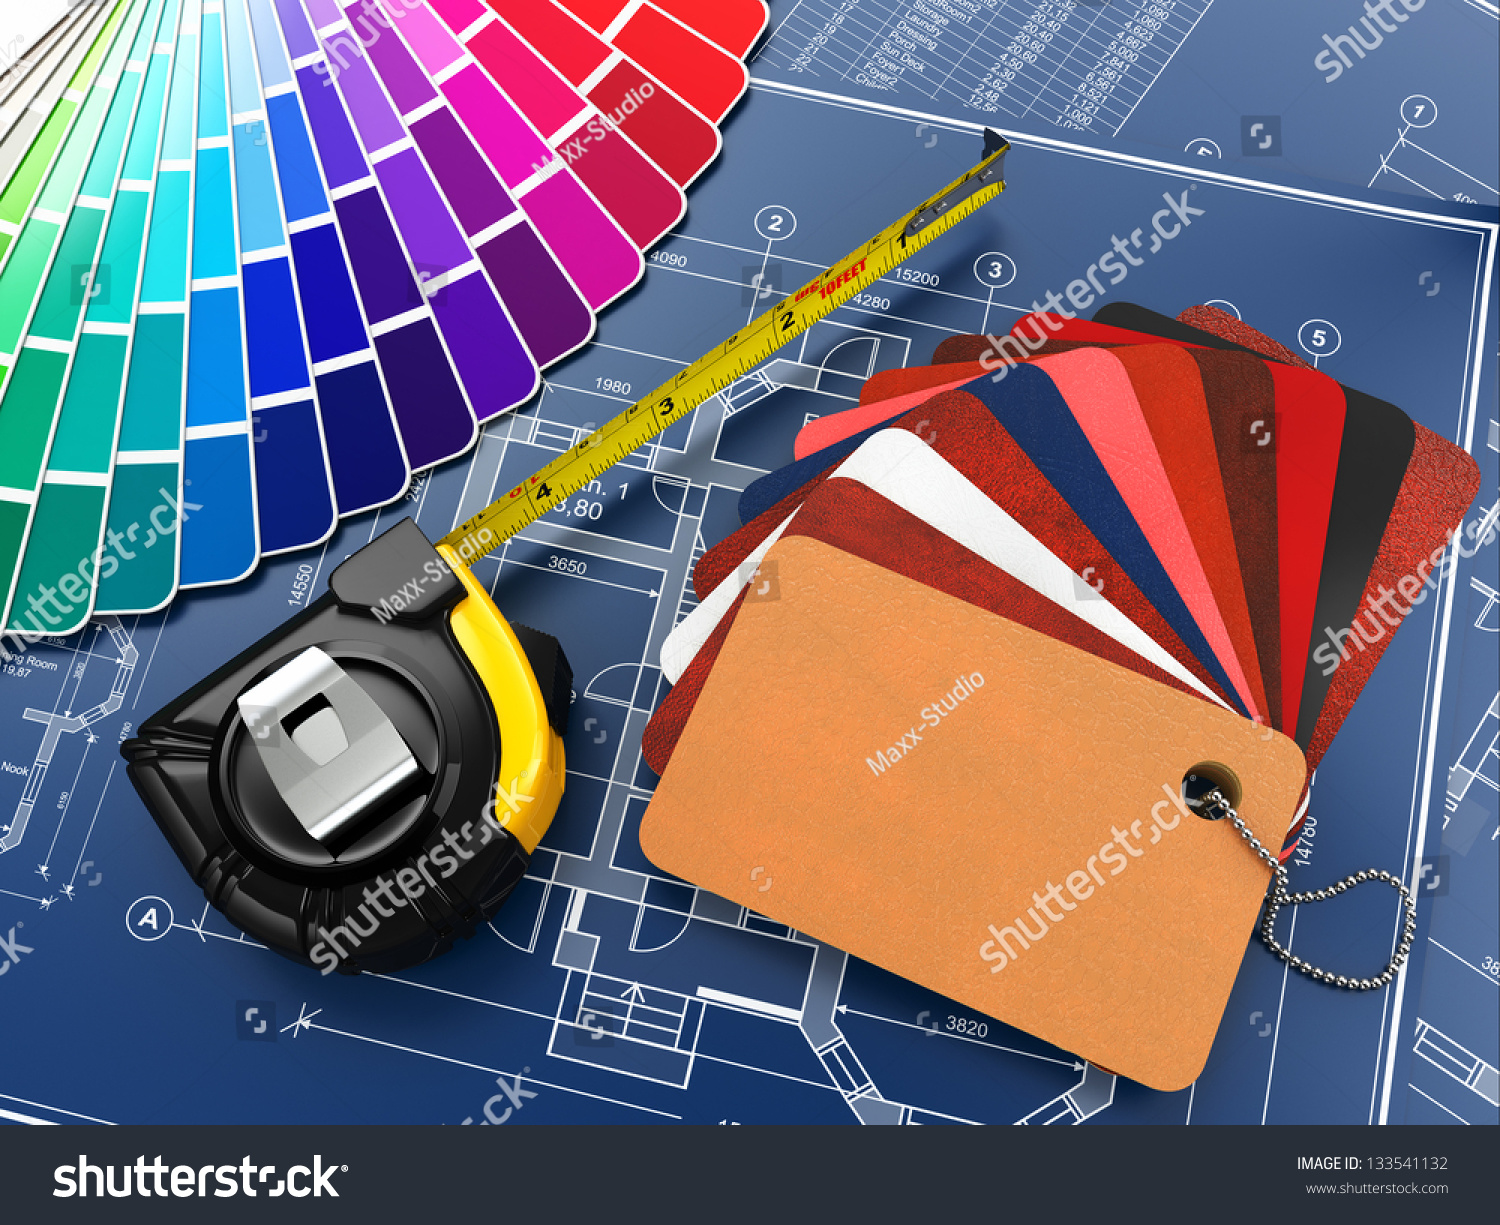 Interior Design Architectural Materials Measuring Tools Stock Illustration 133541132 Shutterstock